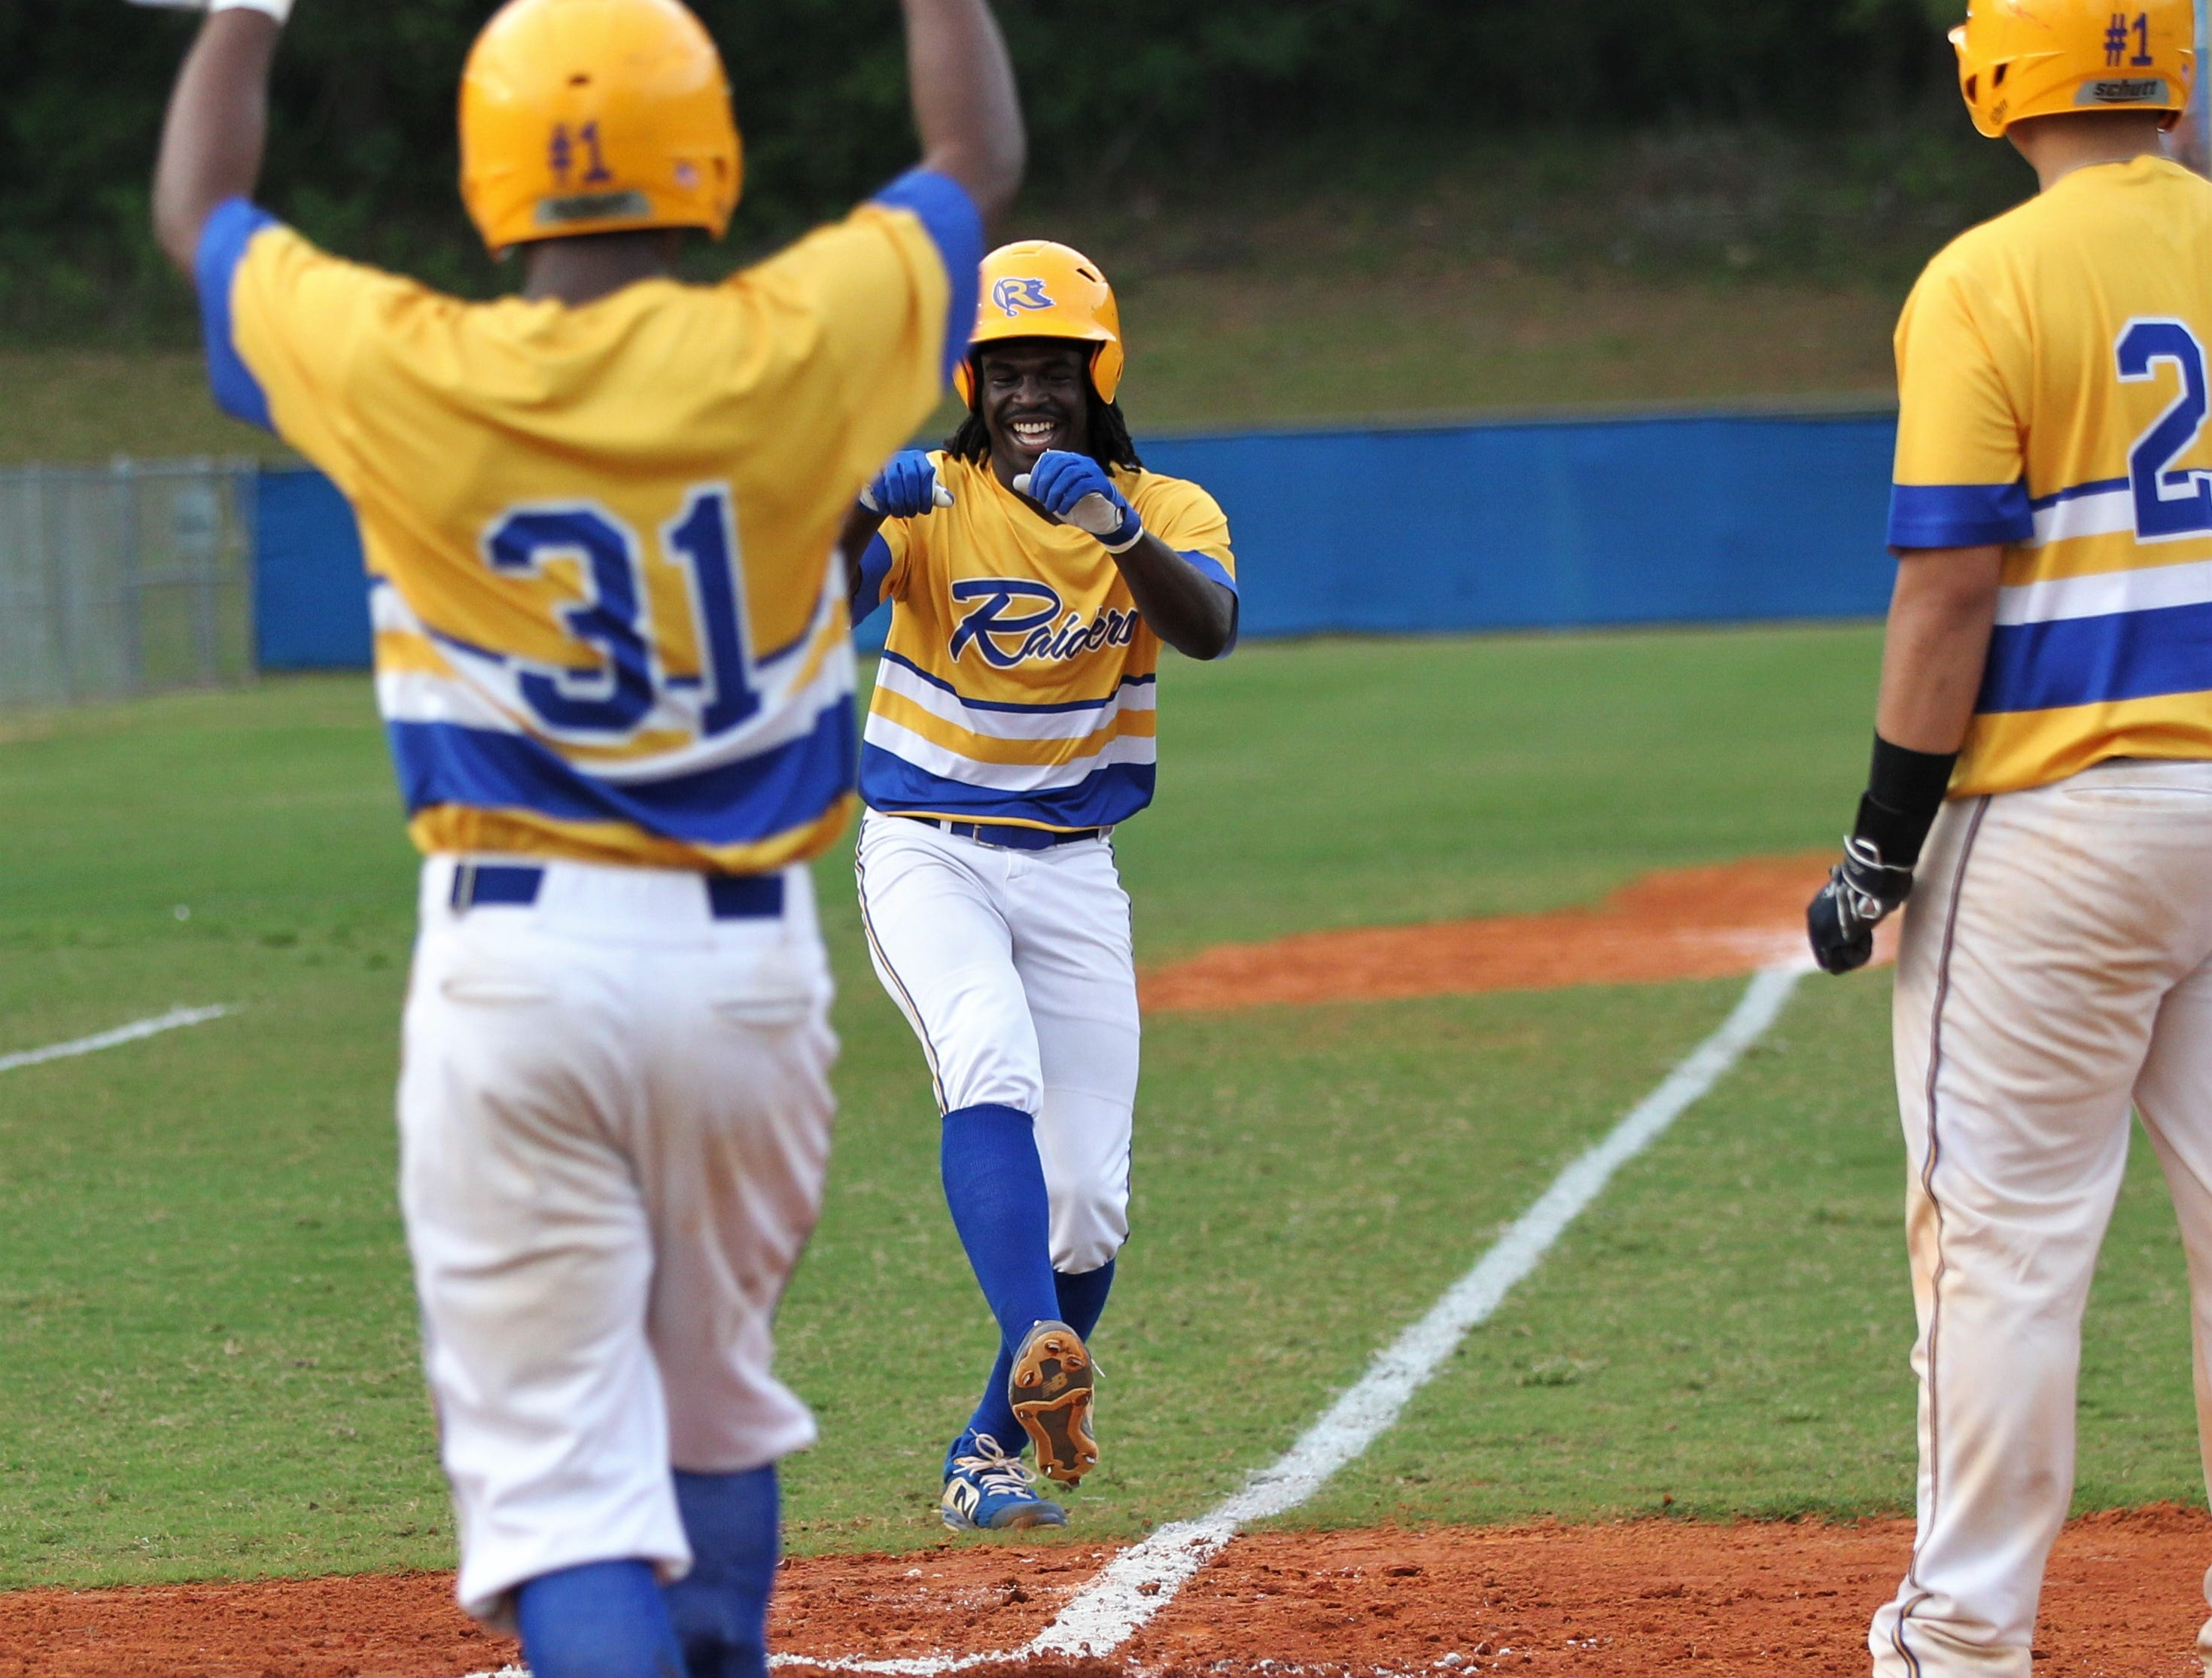 Rickards sophomore Kaleb Henry revs up at home plate after hitting a home run as Rickards beat Gadsden County 18-0 in three innings on Friday, April 12, 2019.